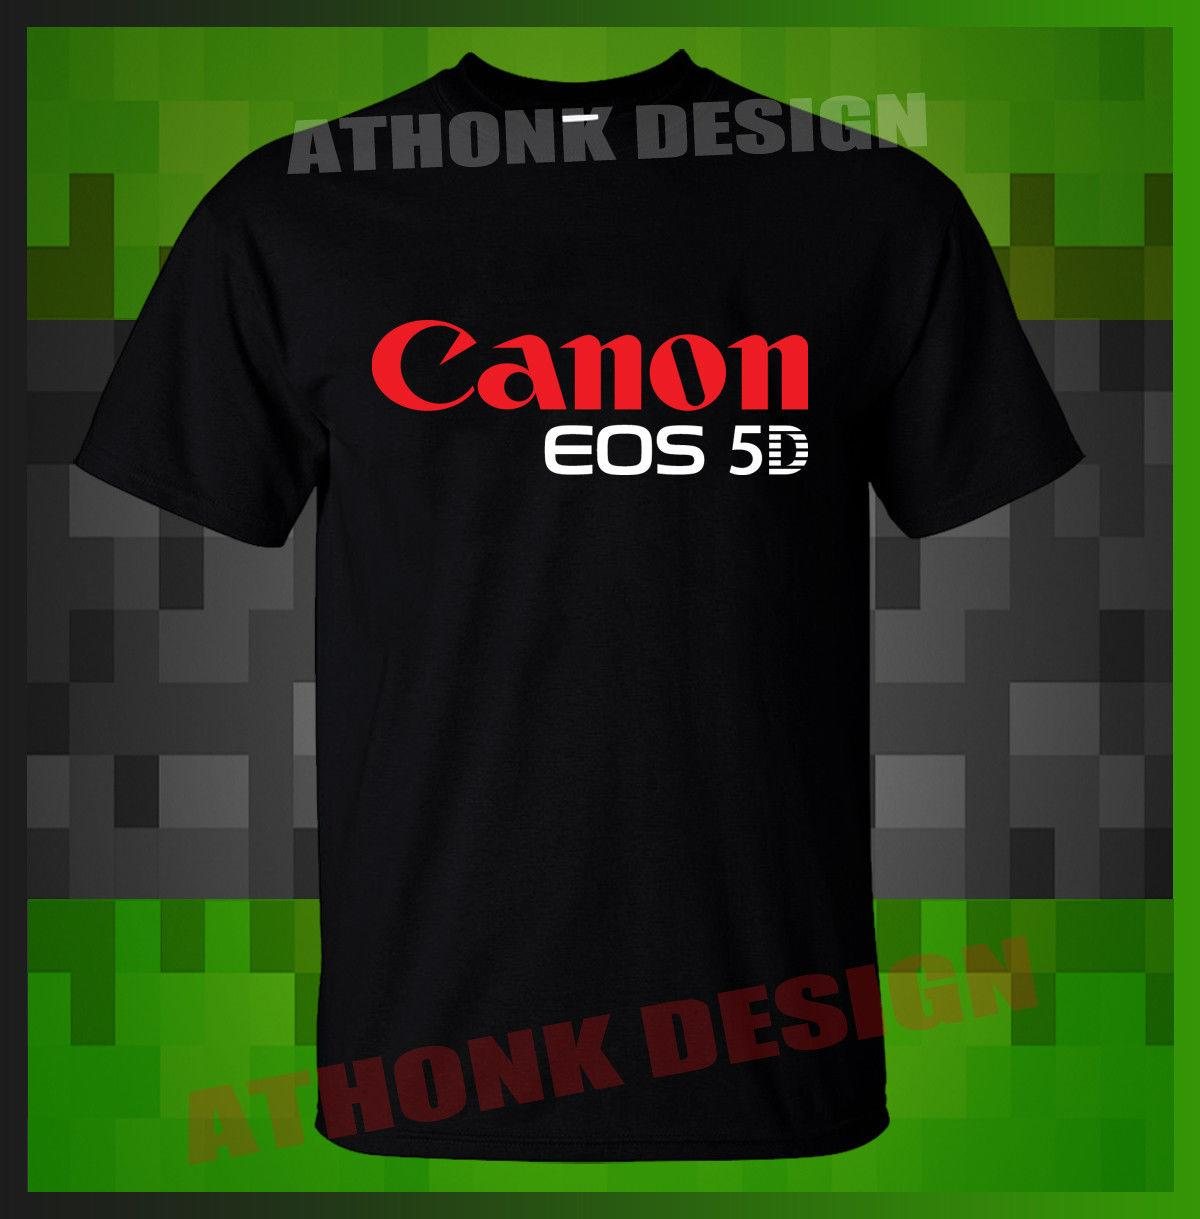 fe6eb0f3b NEW CANON EOS 5D T SHIRT Funny Unisex Casual Tshirt Top Awesome T Shirts  For Men T Shirts Shopping Online From Thebestoree, $12.96| DHgate.Com